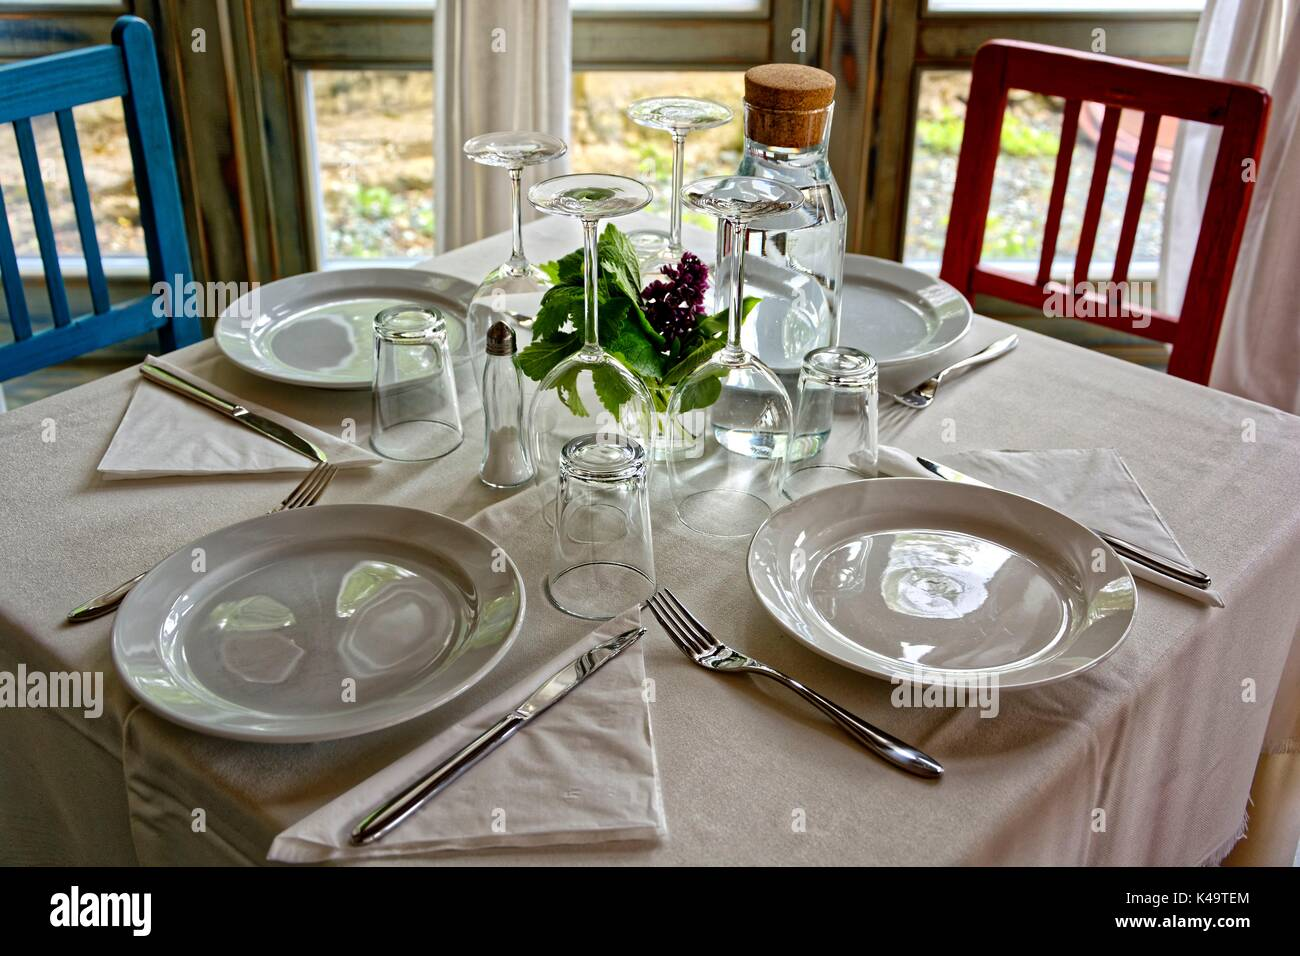 Table Set For Four Persons With Plates And Glasses - Stock Image